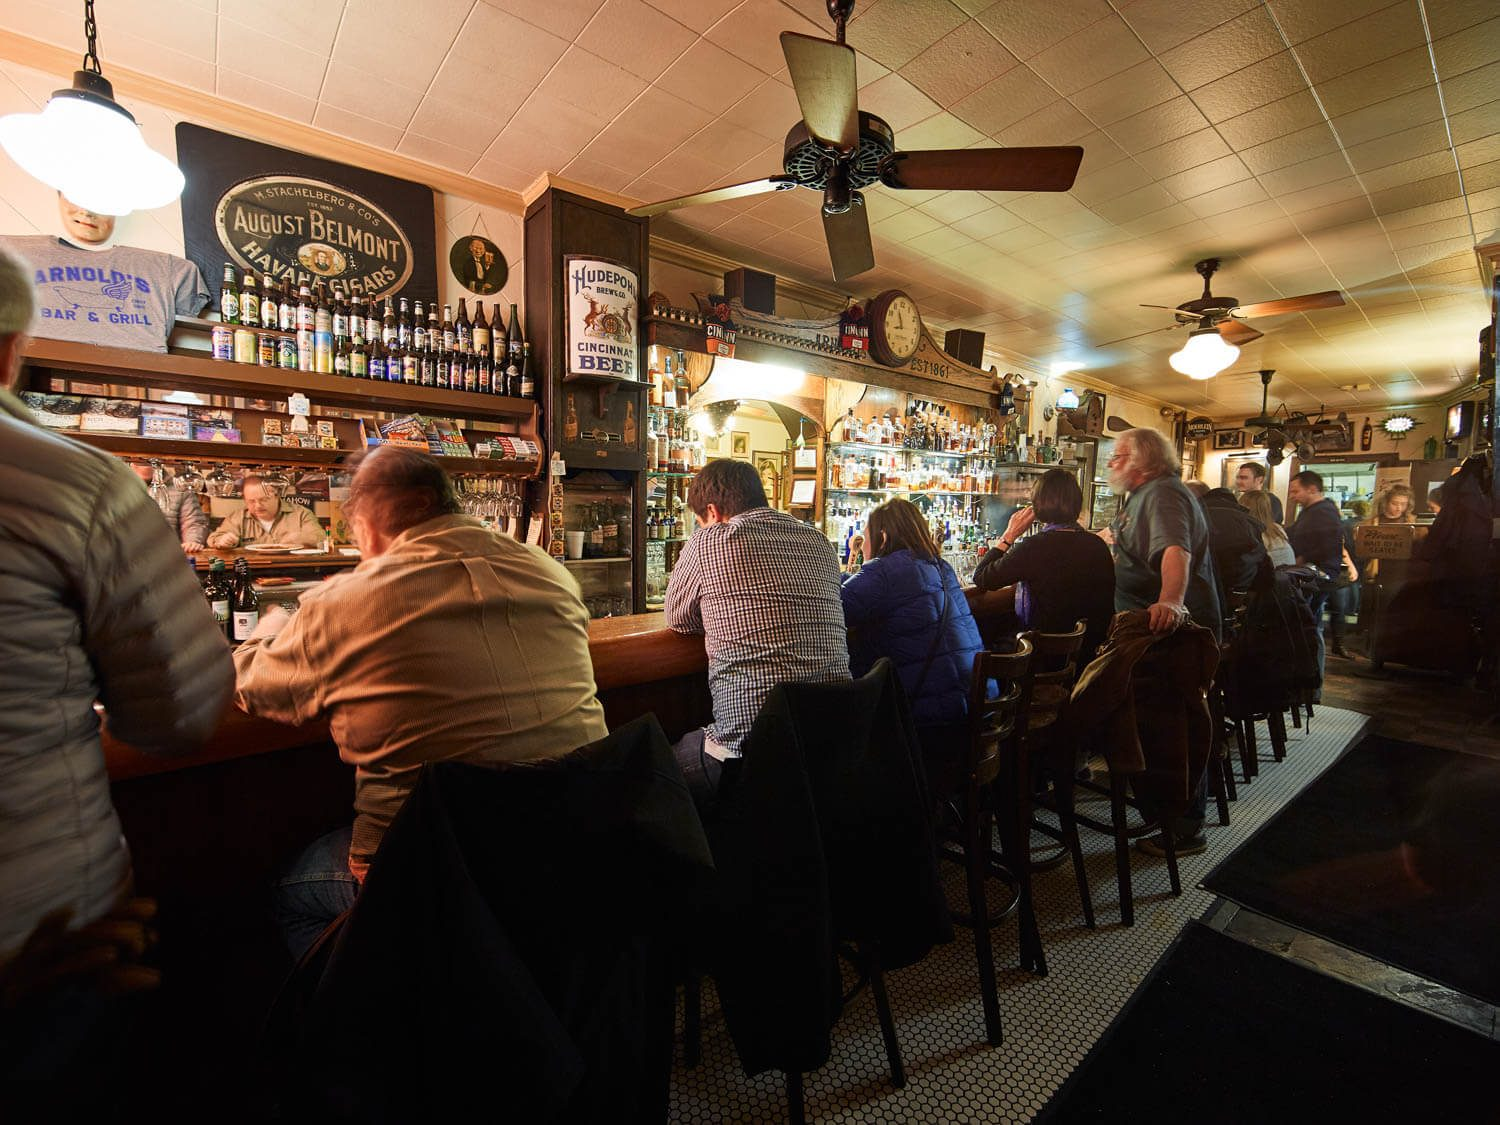 A busy night at Arnold's Bar and Grill